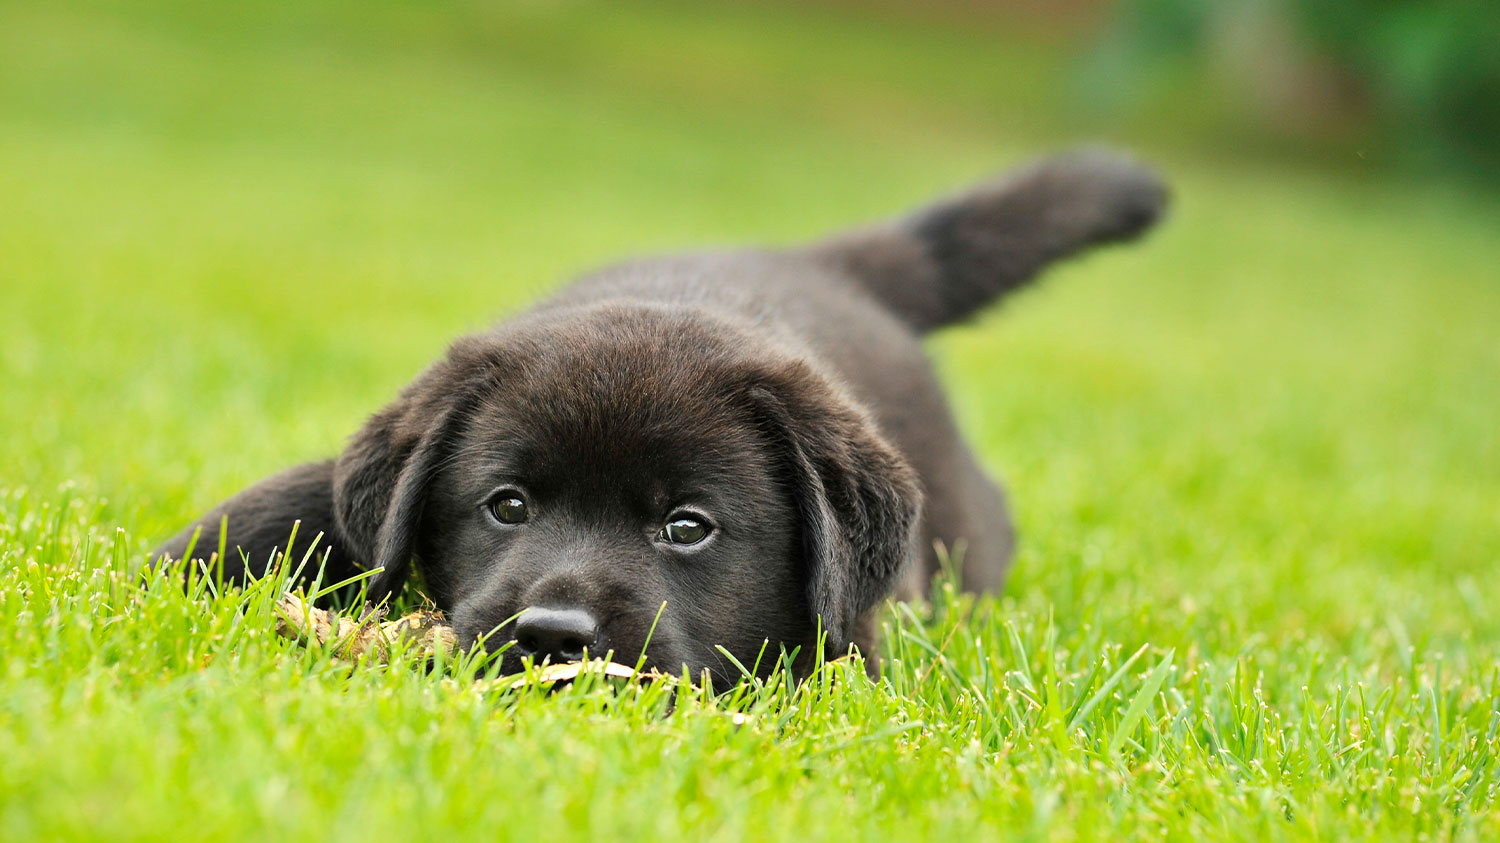 Dog laying in grass